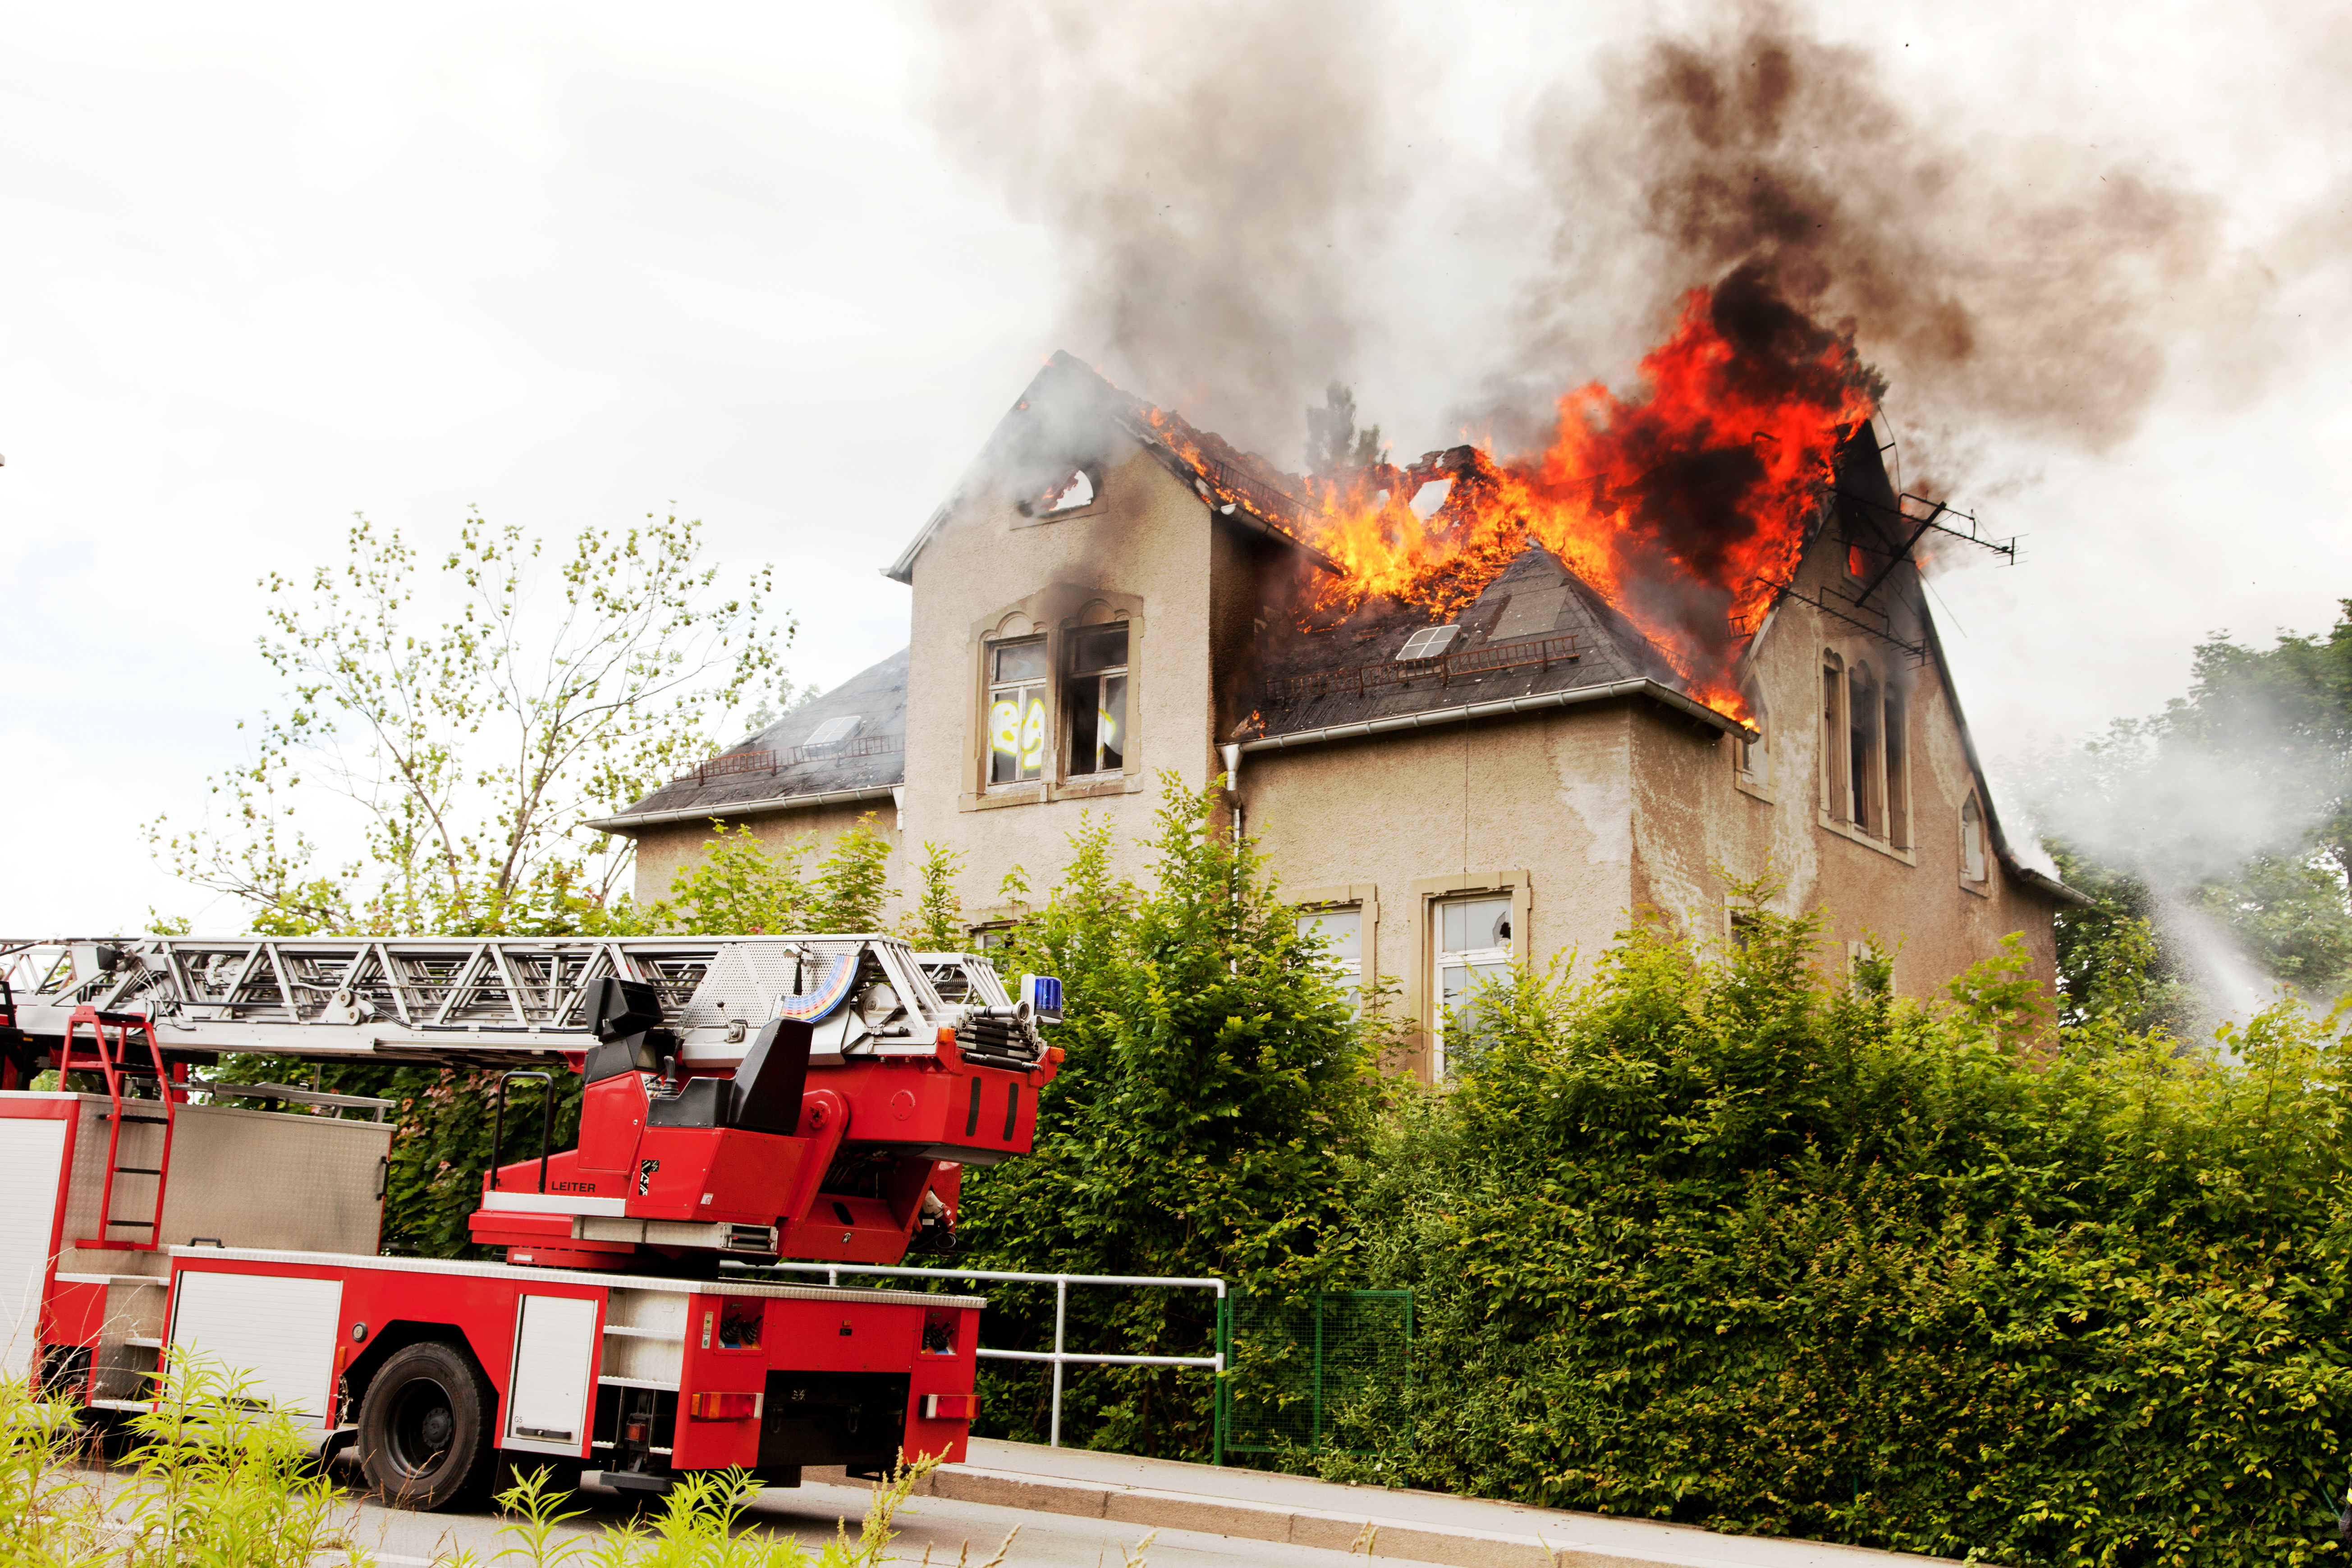 CommandeX - How to Protect Your Home in Case of a House Fire